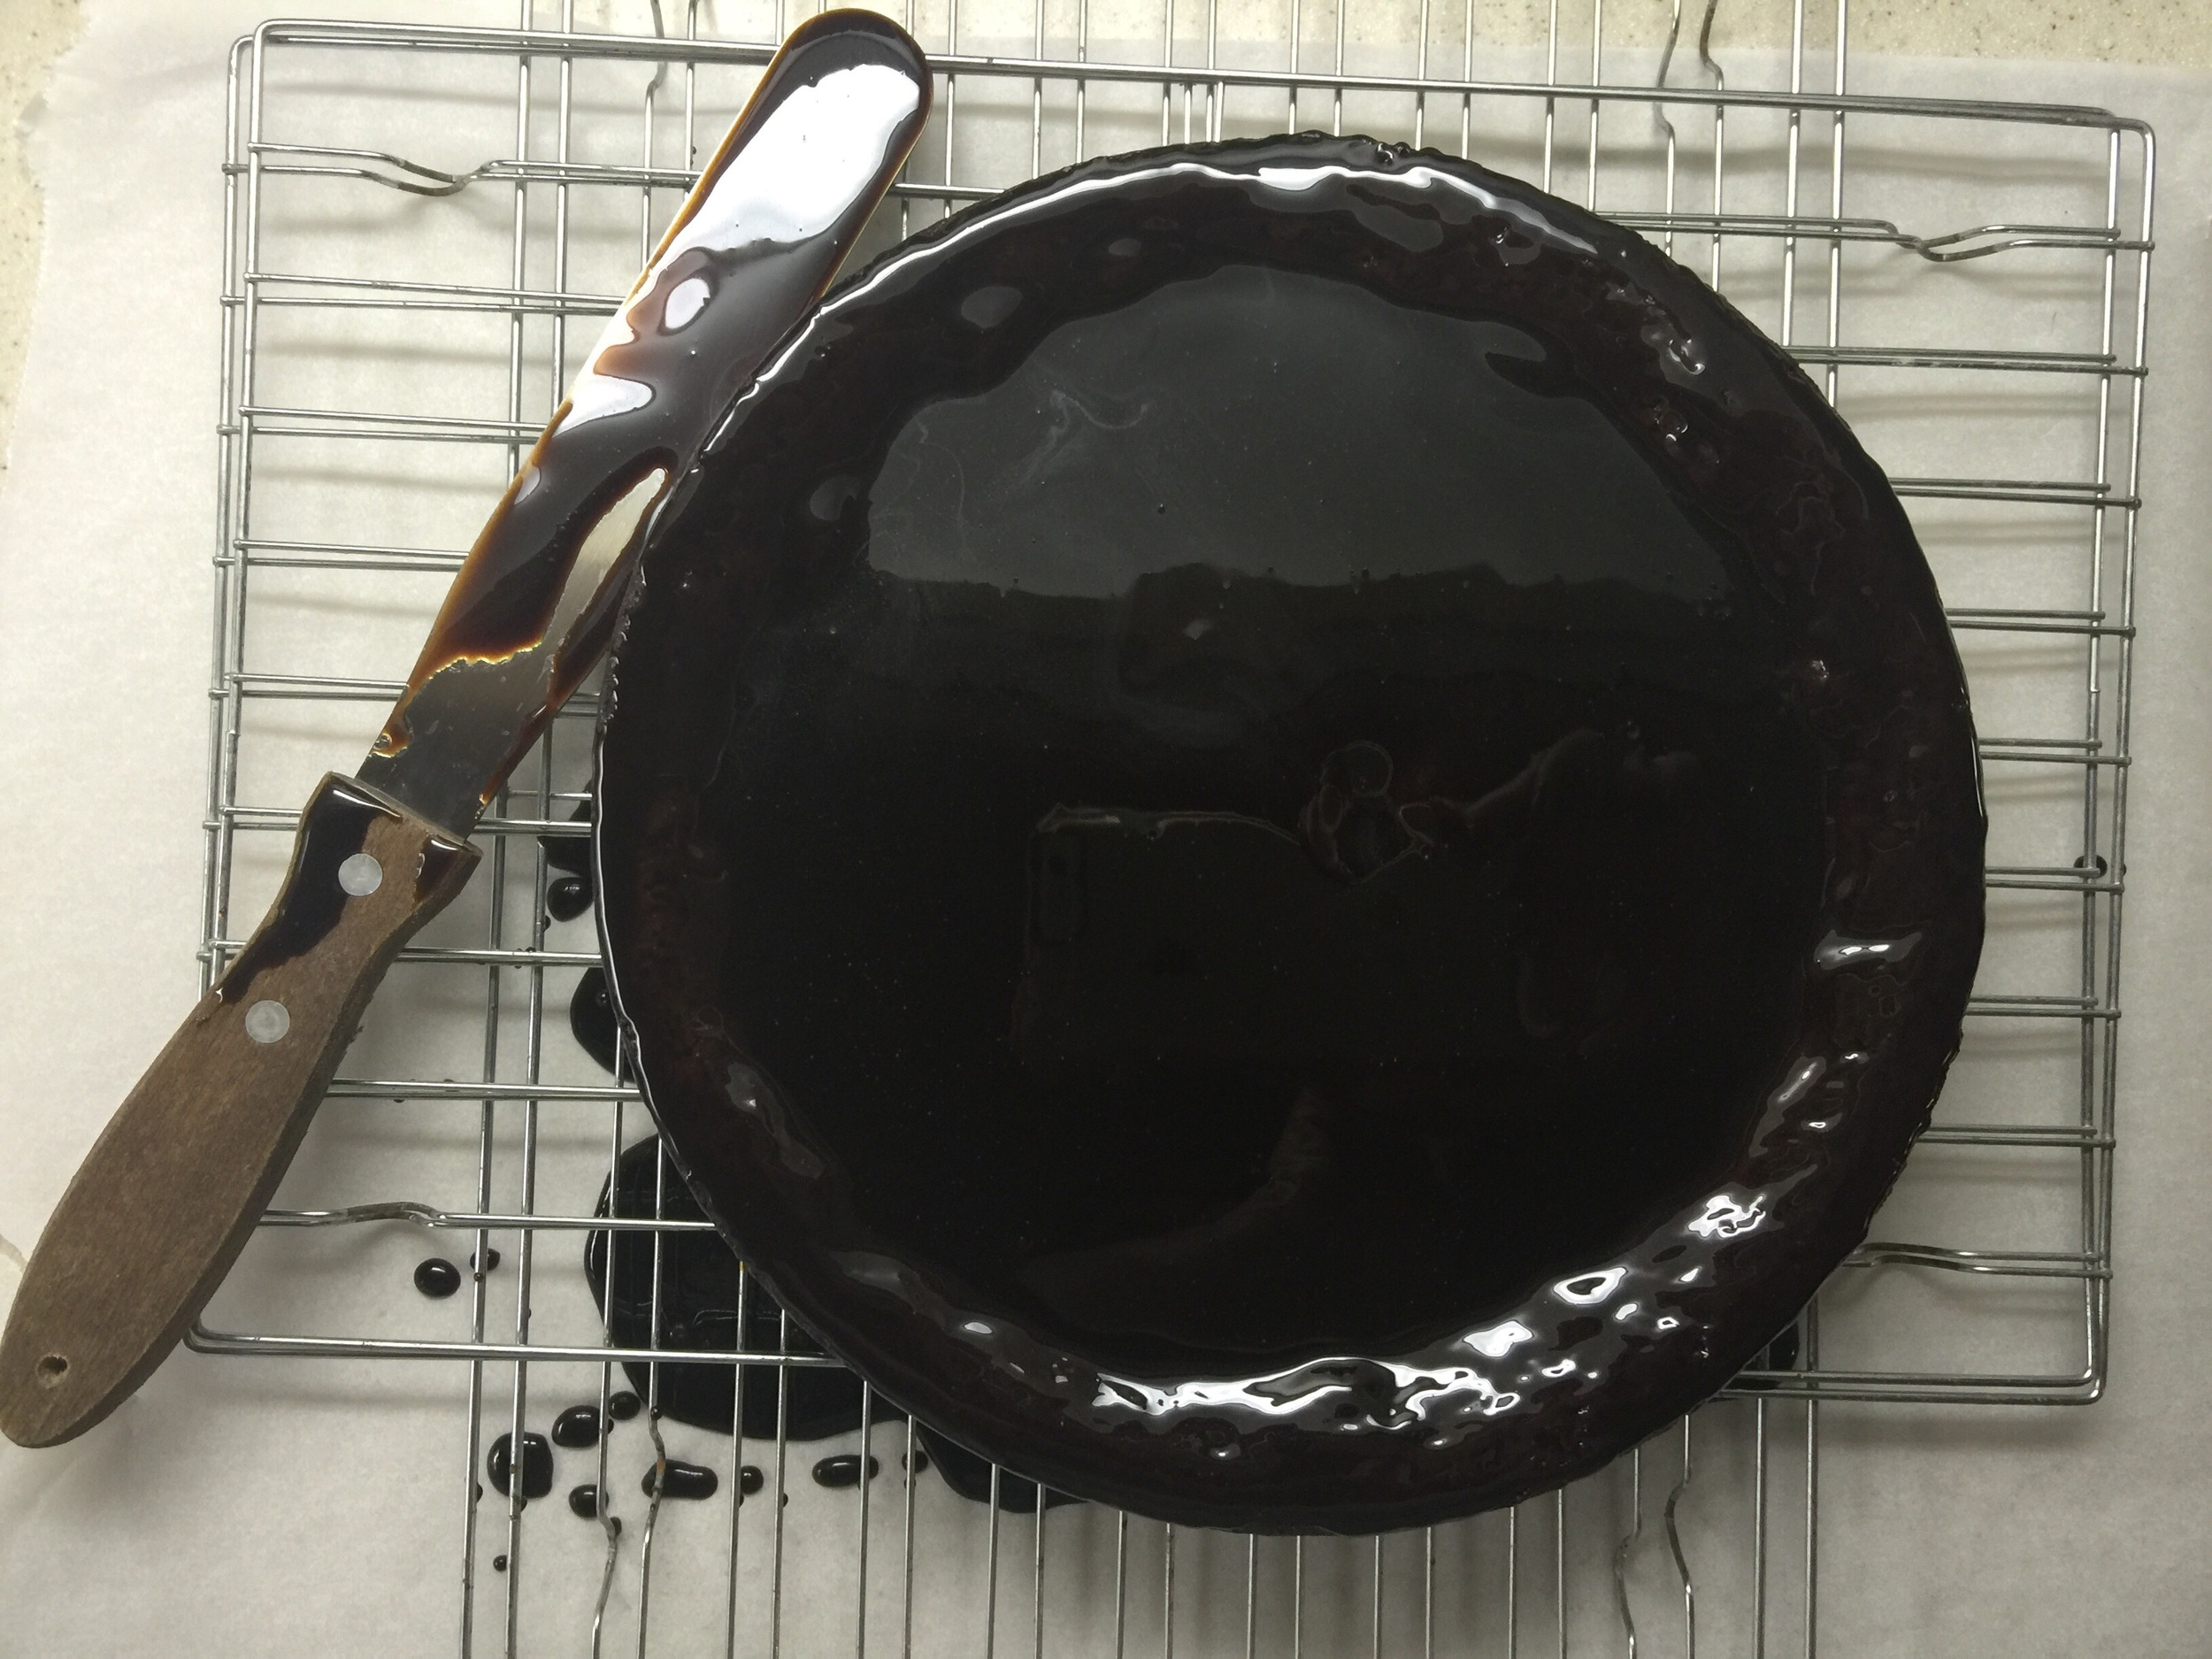 The balsamic glaze is mixed with the chocolate (merlot) sauce. Look at that luxurious dark color!